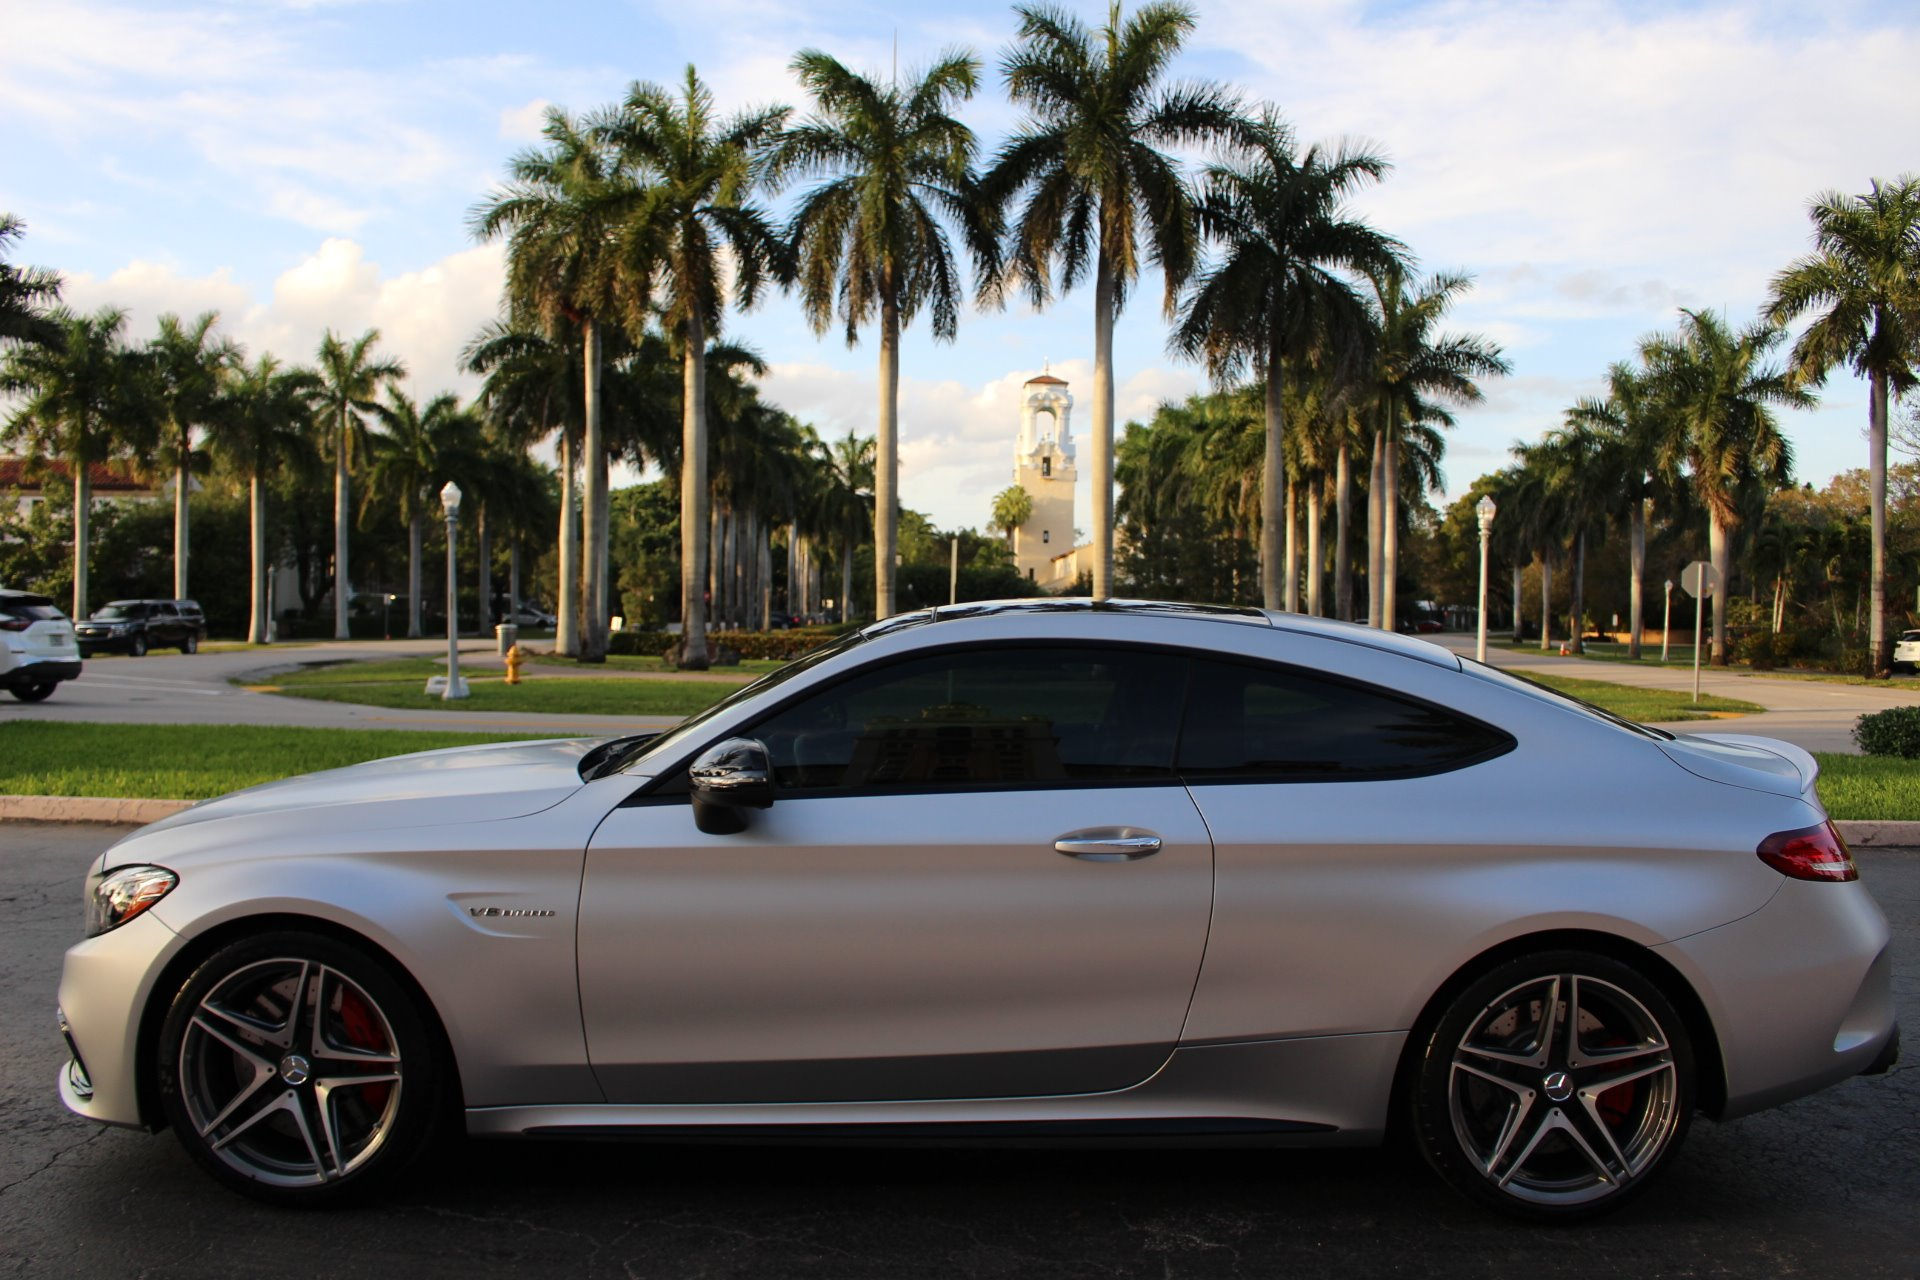 Used 2018 Mercedes-Benz C-Class AMG C 63 S for sale Sold at The Gables Sports Cars in Miami FL 33146 3